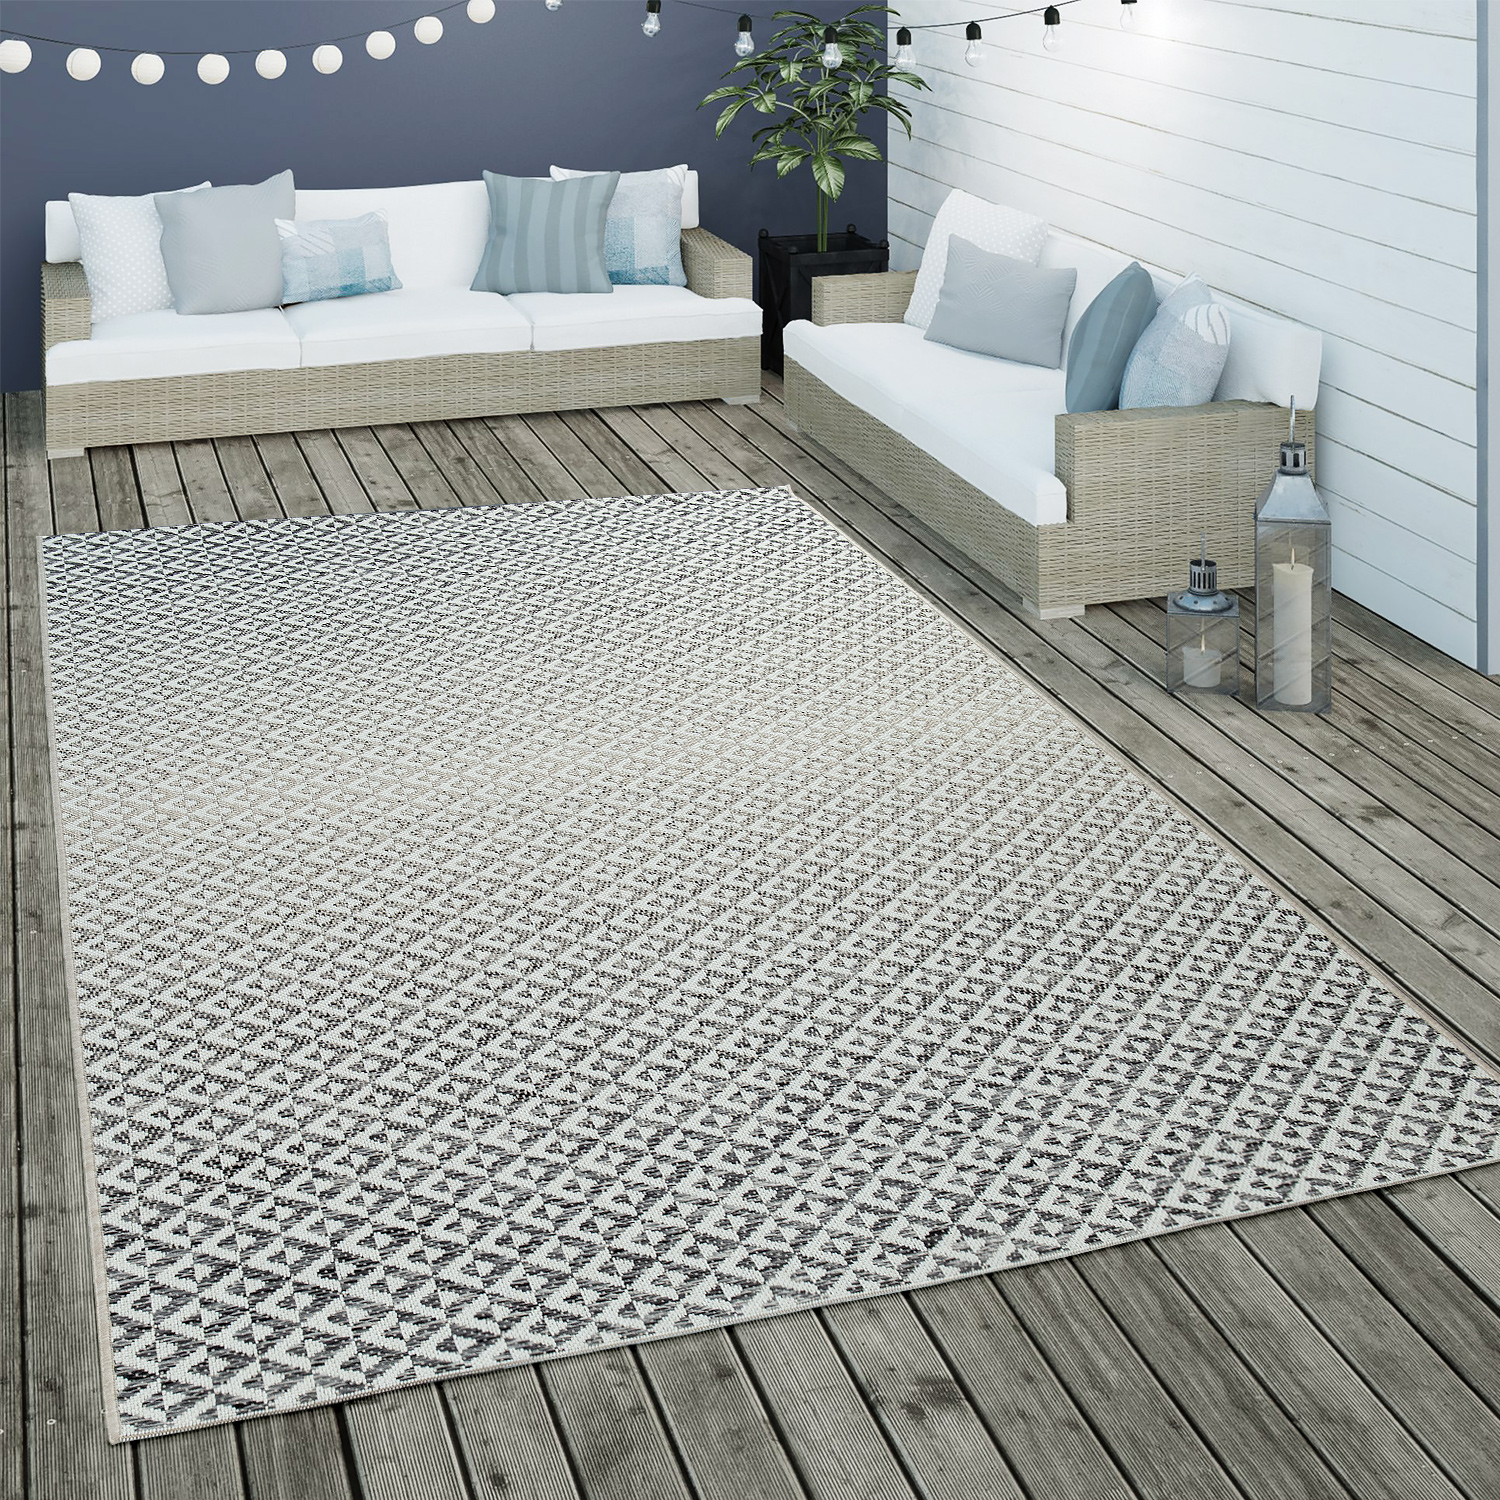 Indoor & Outdoor Flat-Weave Rug Geometric Scandi Diamond Design In Grey